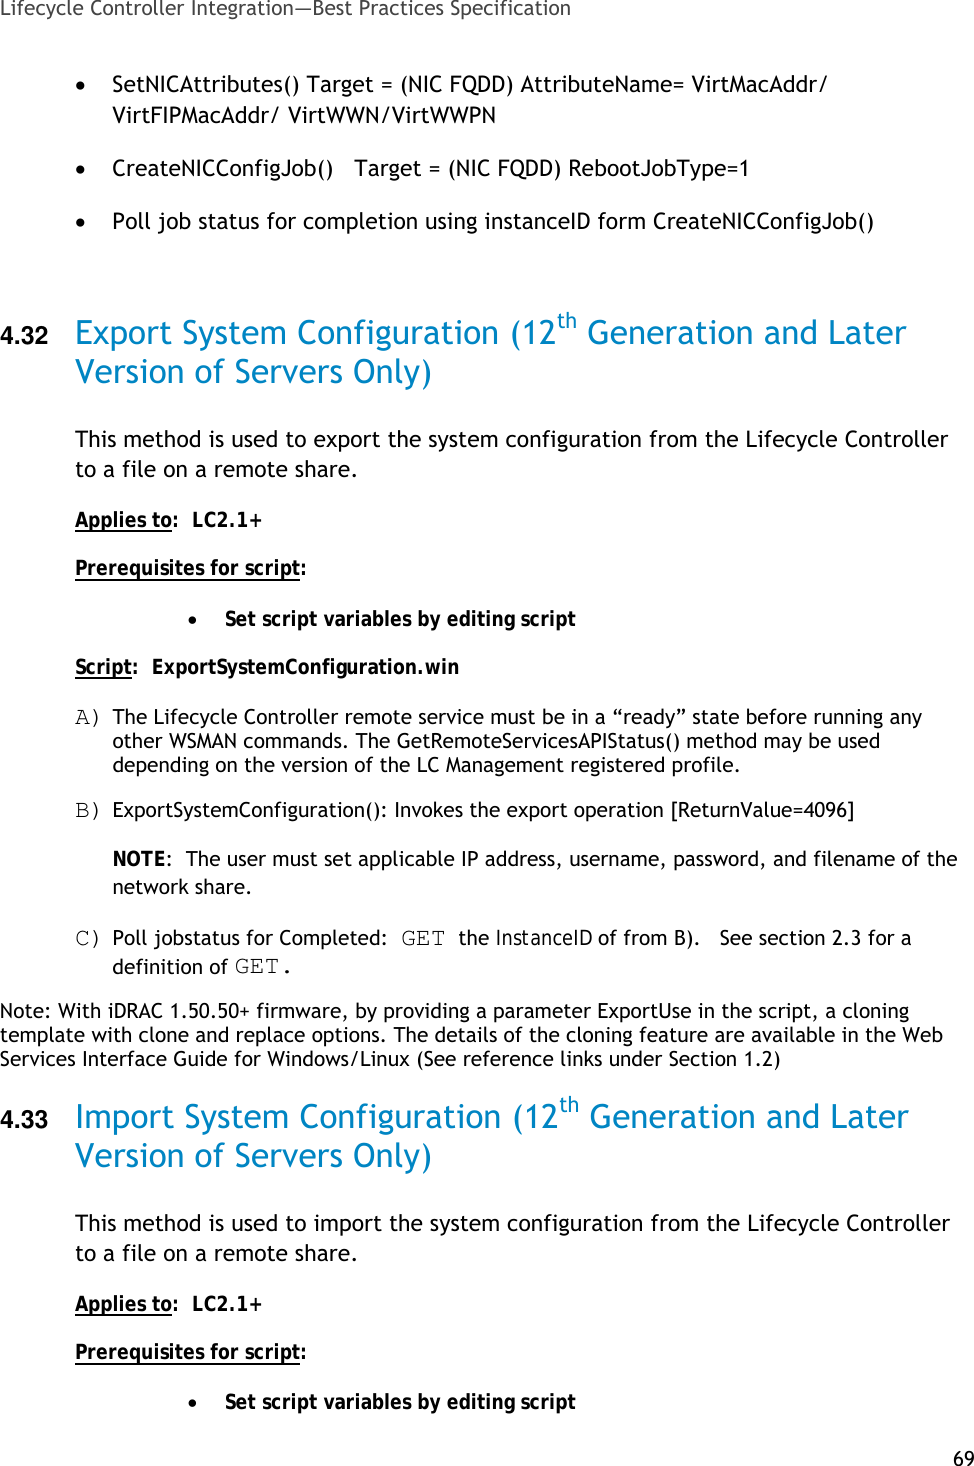 Dell Lifecycle Controller 2 Version 1 3 0 Practices Guide Best